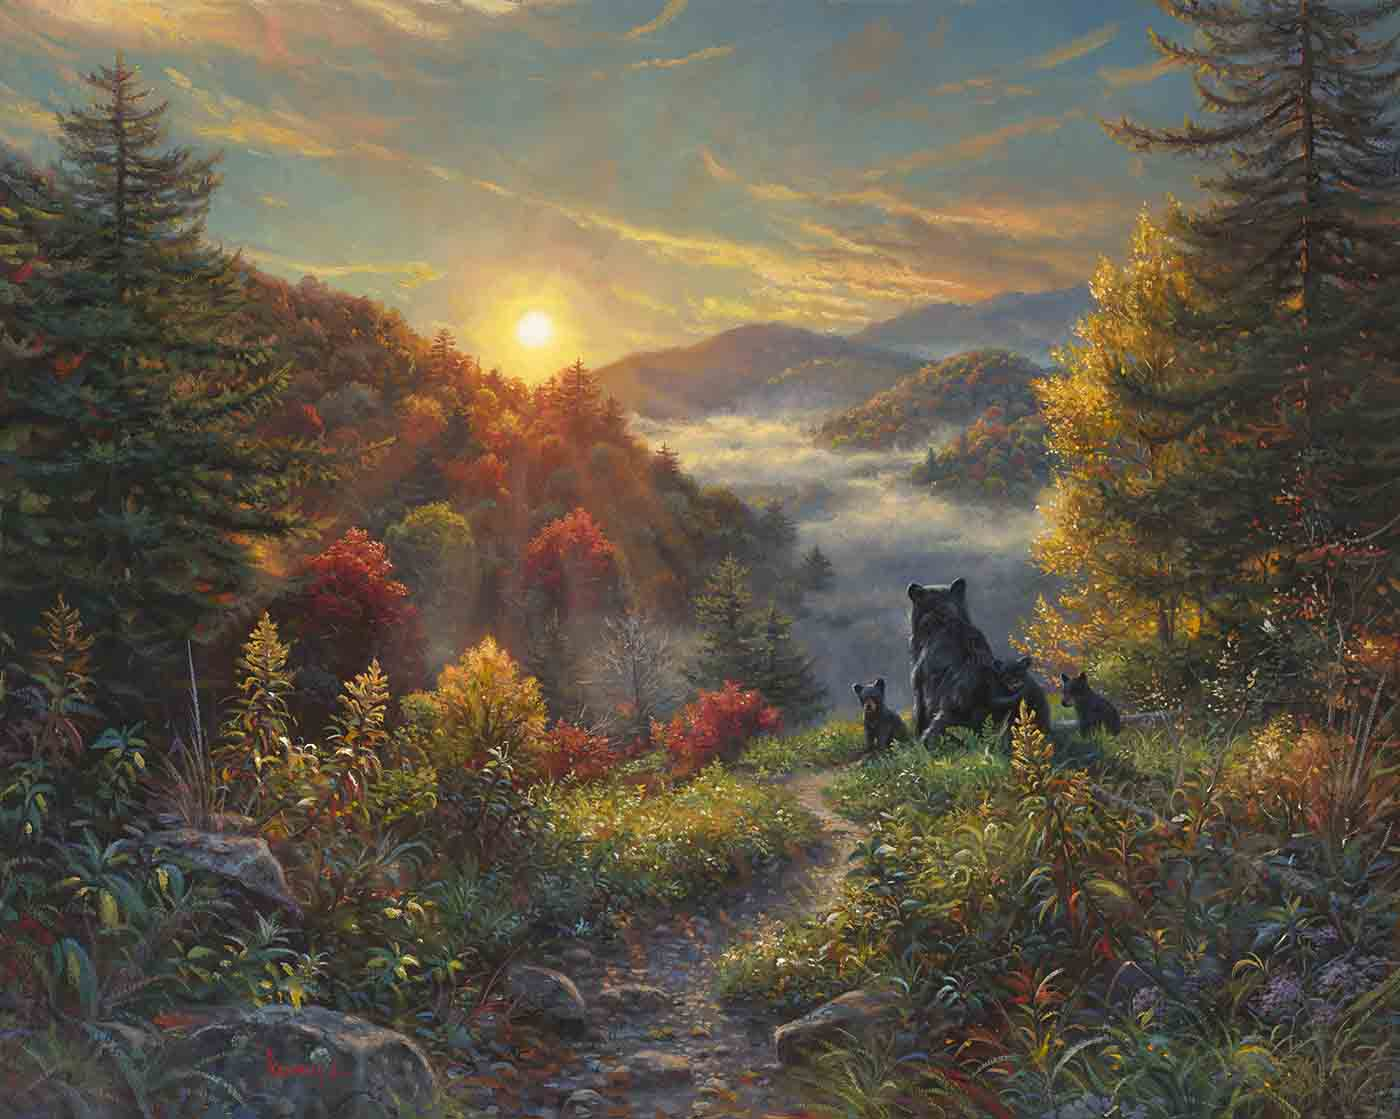 Fall Blessings Wallpaper Mark Keathley Gallery